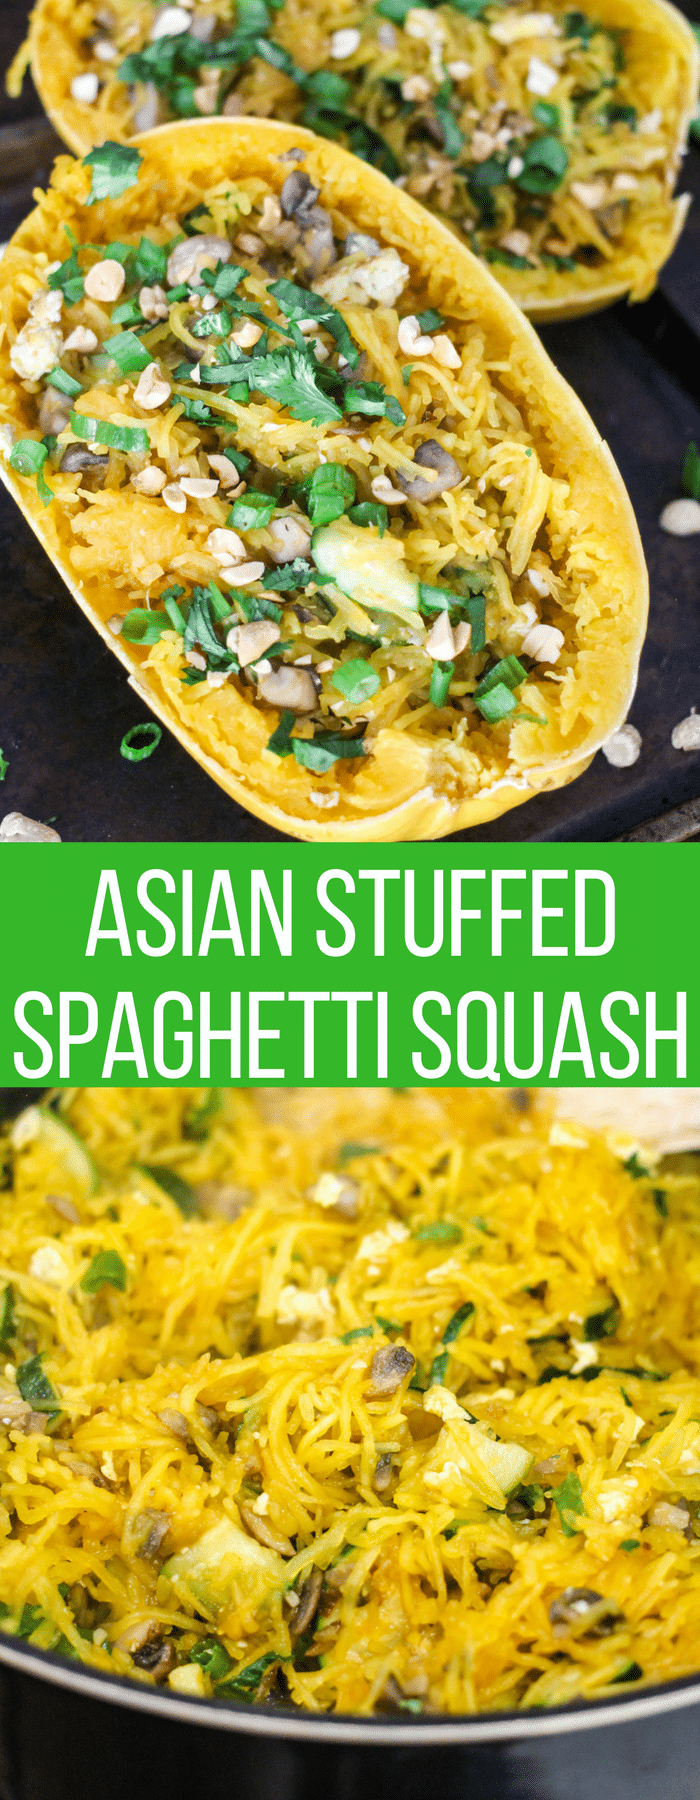 This Asian Spaghetti Squash is stuffed with fresh vegetables, herbs, and spices, then topped with a delicious asian sauce. It's healthy, easy, and the perfect weeknight dinner!